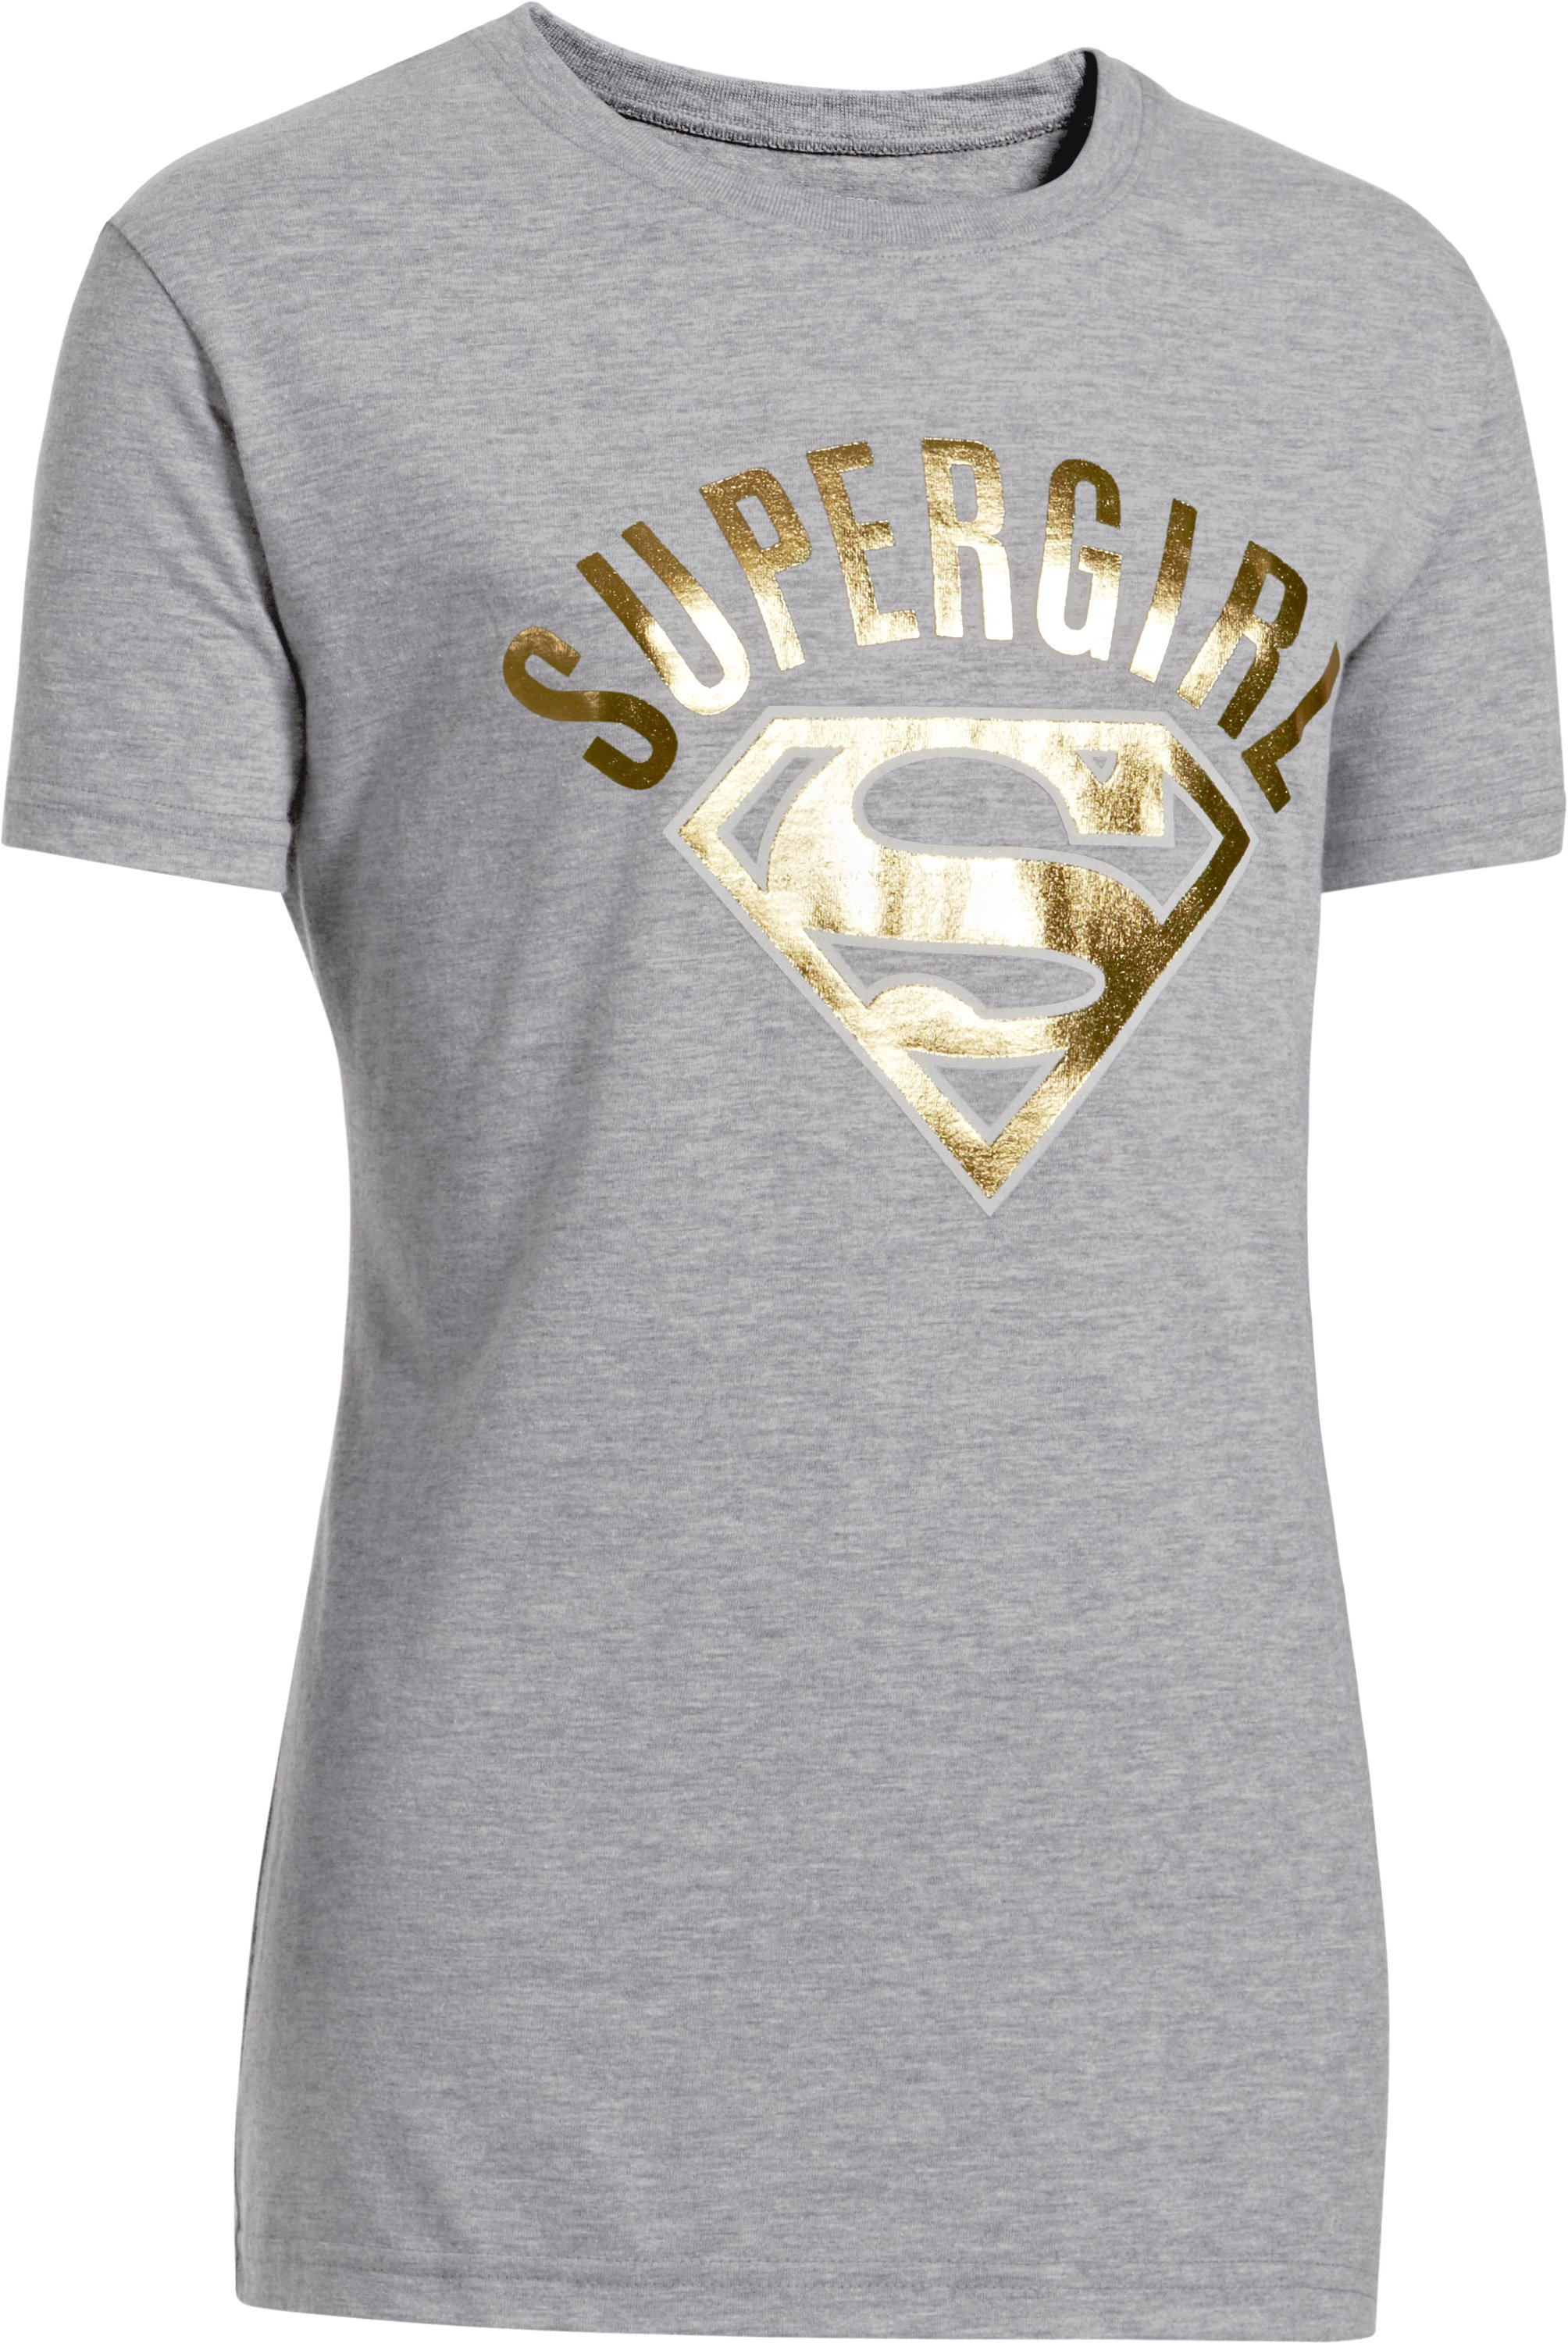 Girls' Under Armour® Alter Ego Supergirl Foil T-Shirt, True Gray Heather, zoomed image